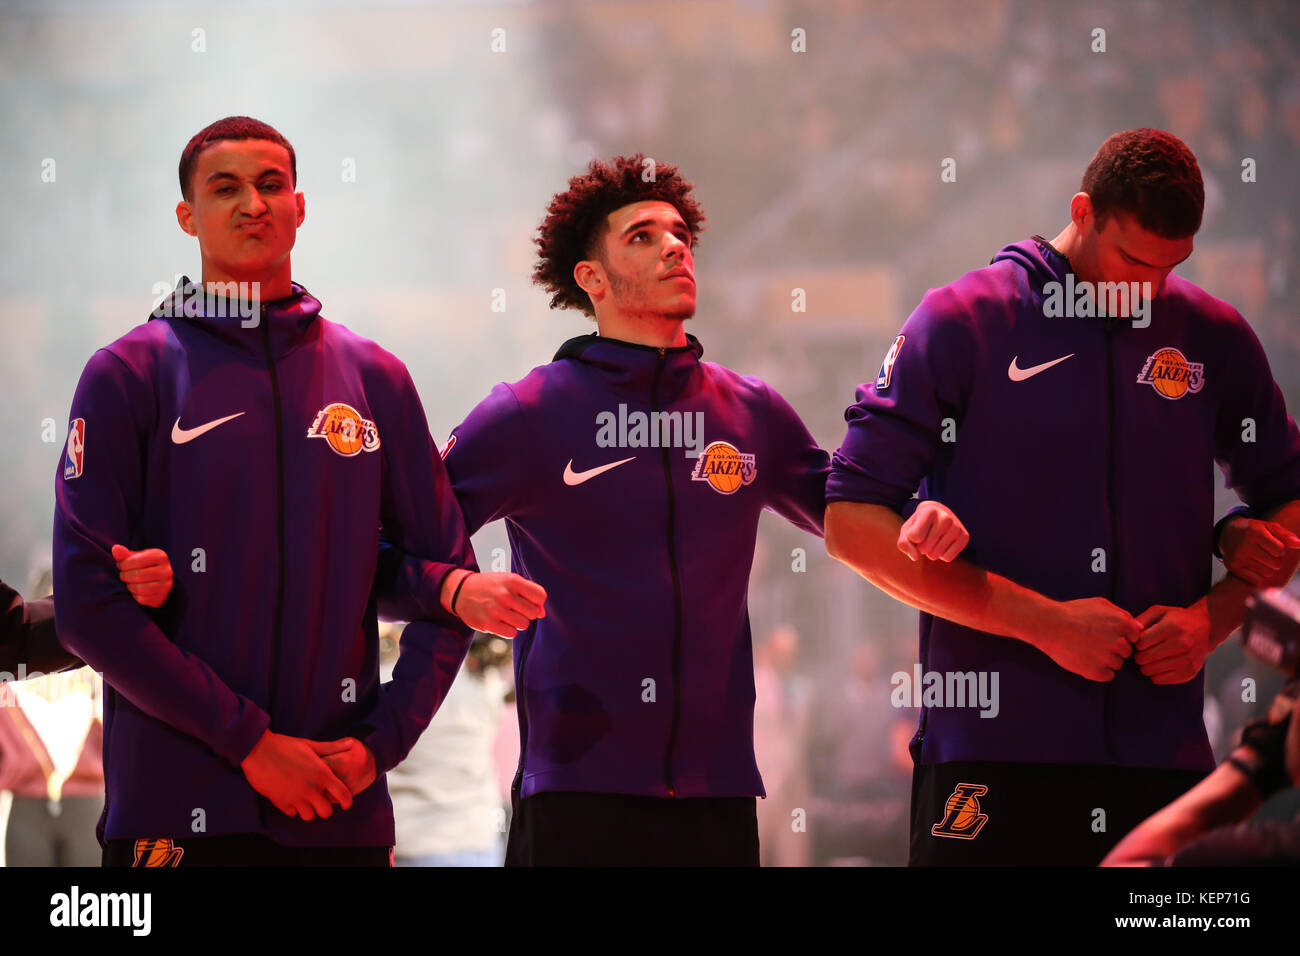 Los Angeles, CA, USA  22nd Oct, 2017  Los Angeles Lakers